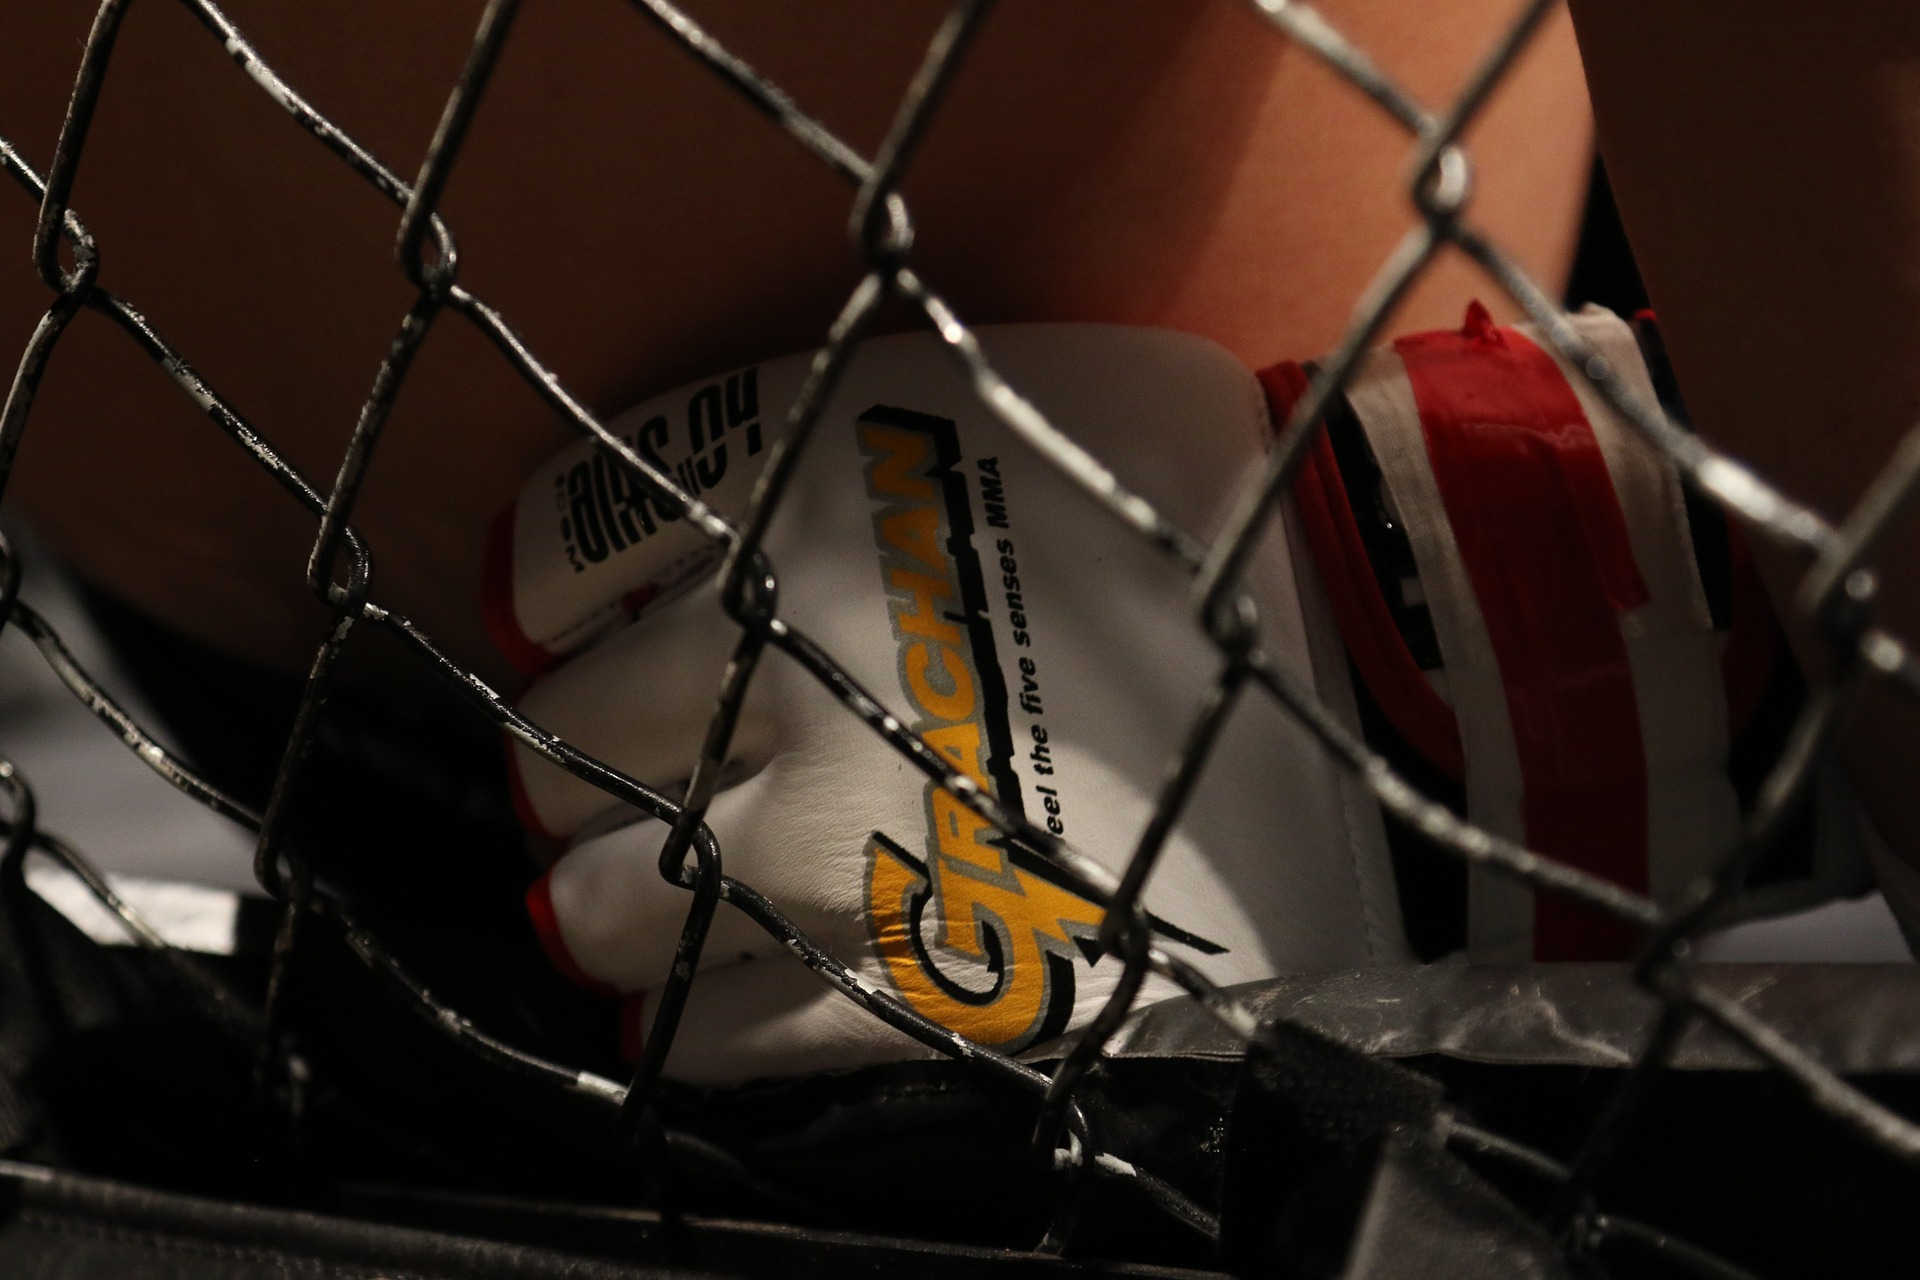 Top 6 Best MMA Gloves for Training and Competition